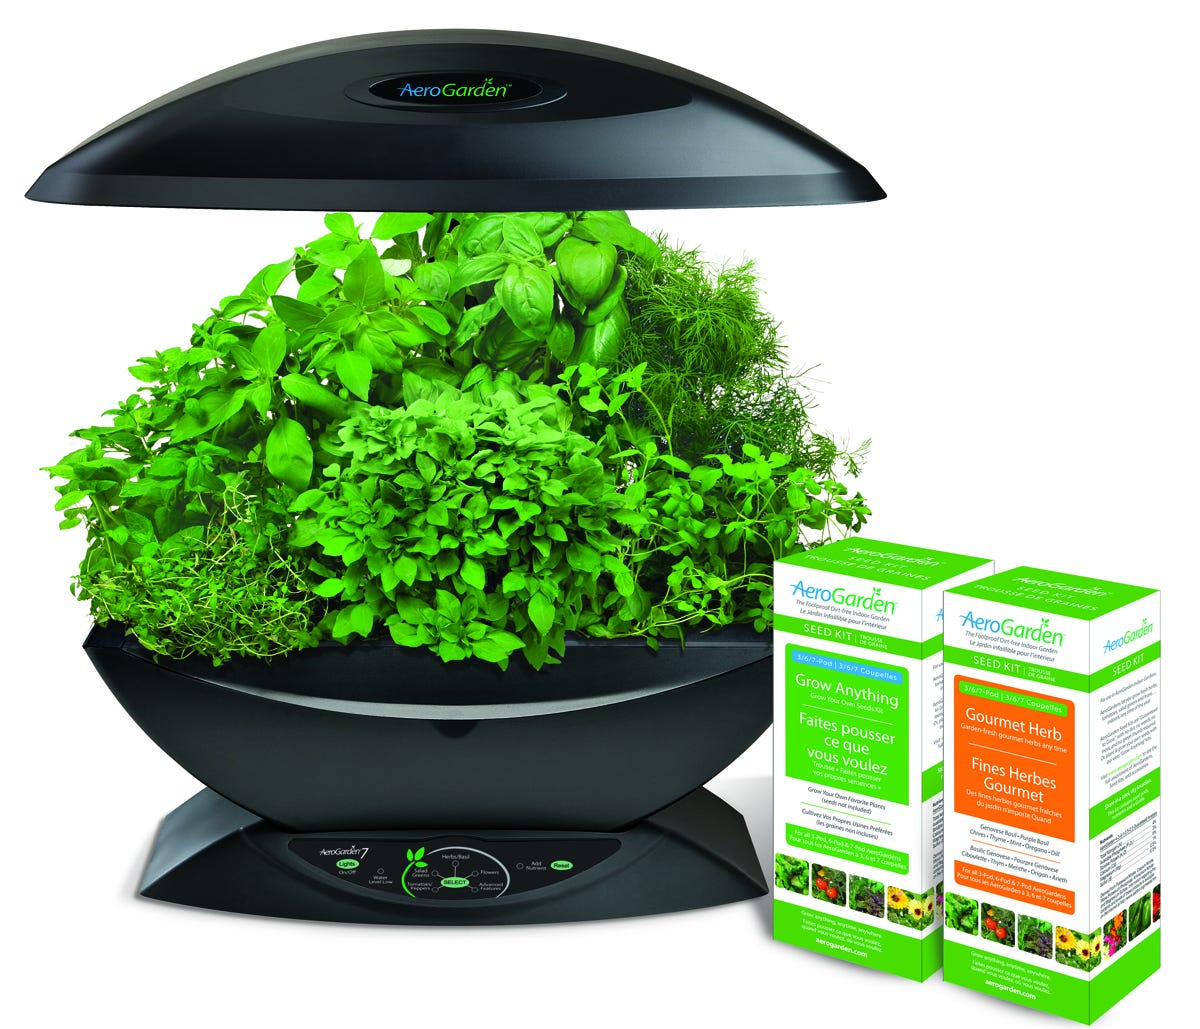 AeroGarden 7 w/Gourmet Herb & Grow Anything Kit Seed Starting, Seedling, Seedstarting Supplies, Gardening, Seed-Starting, Garden